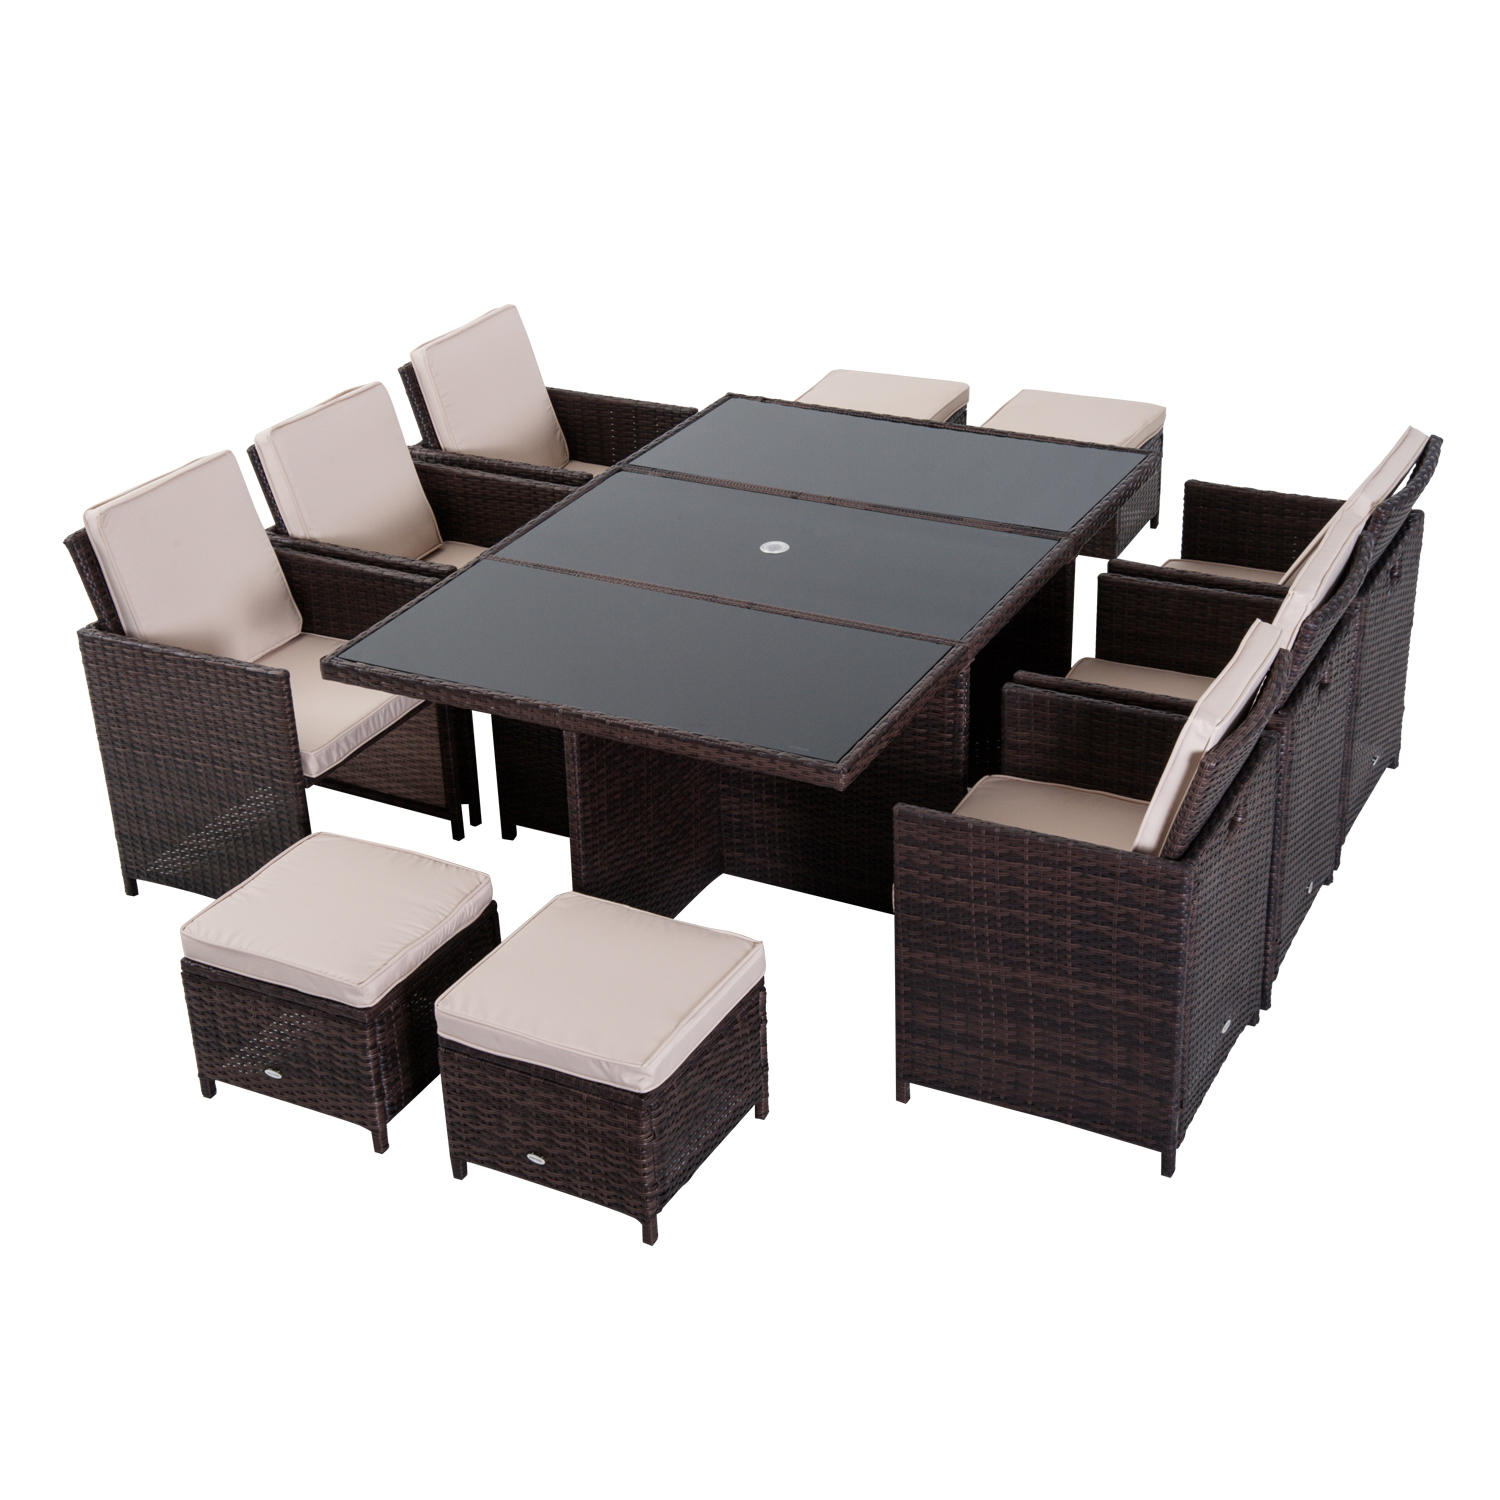 Image of £619.99 Outsunny Rattan Garden Furniture Set, 11 Pieces, Aluminium-Brown / 11pc Outdoor Patio Dining Set Cube Sofa Weave Wicker 6 Chairs 4 Footrests & 1 Table Brown Pieces Cushion Footrest 861-031BN 5056029887592